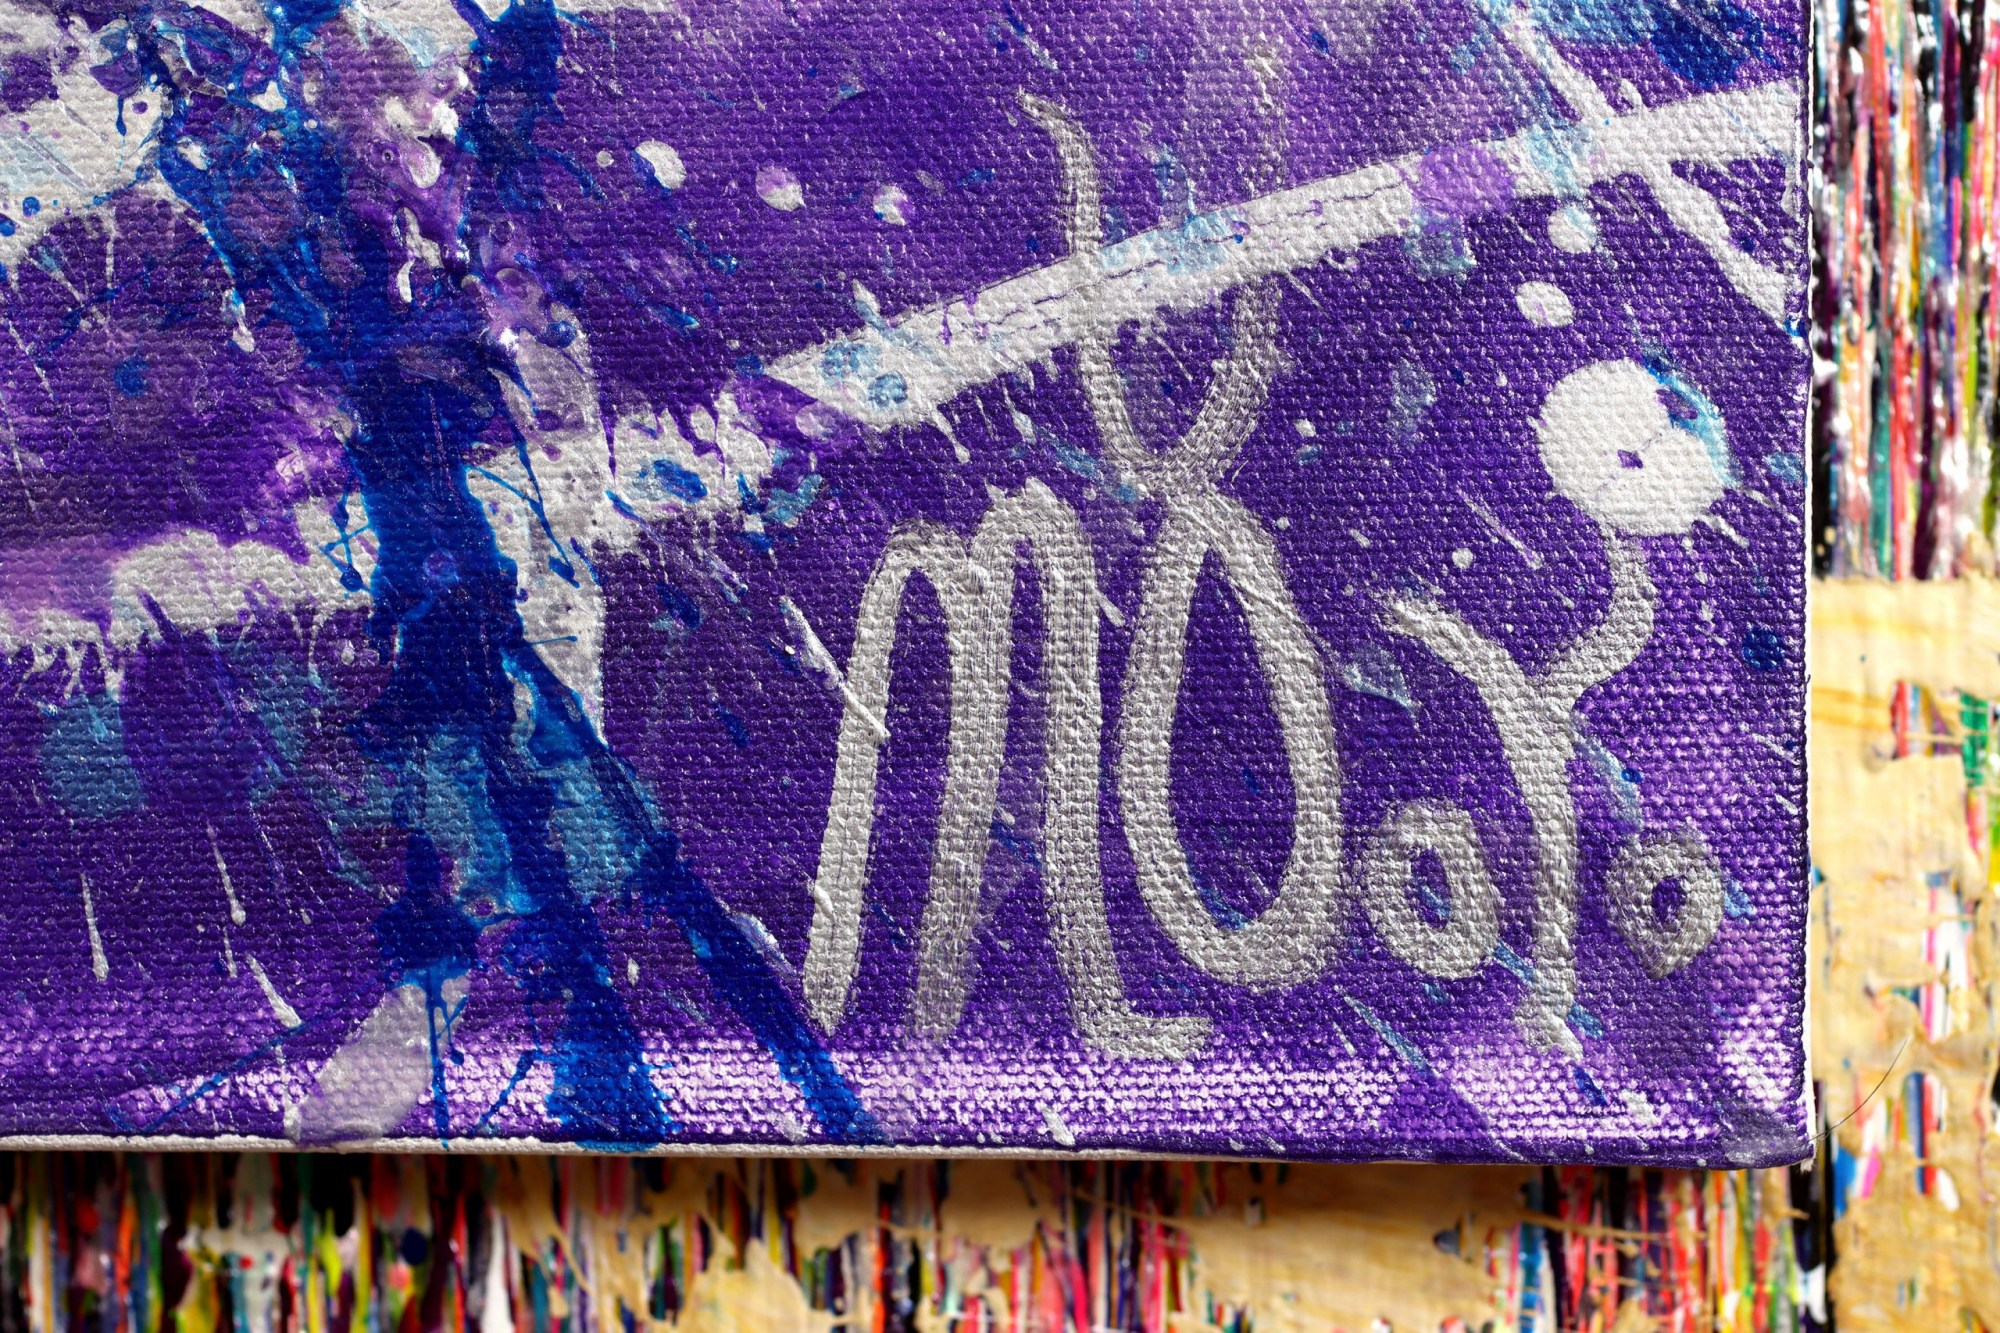 SIGNATURE / DETAIL / Purple Display of Affection (With Blue and Silver) 2 Painting